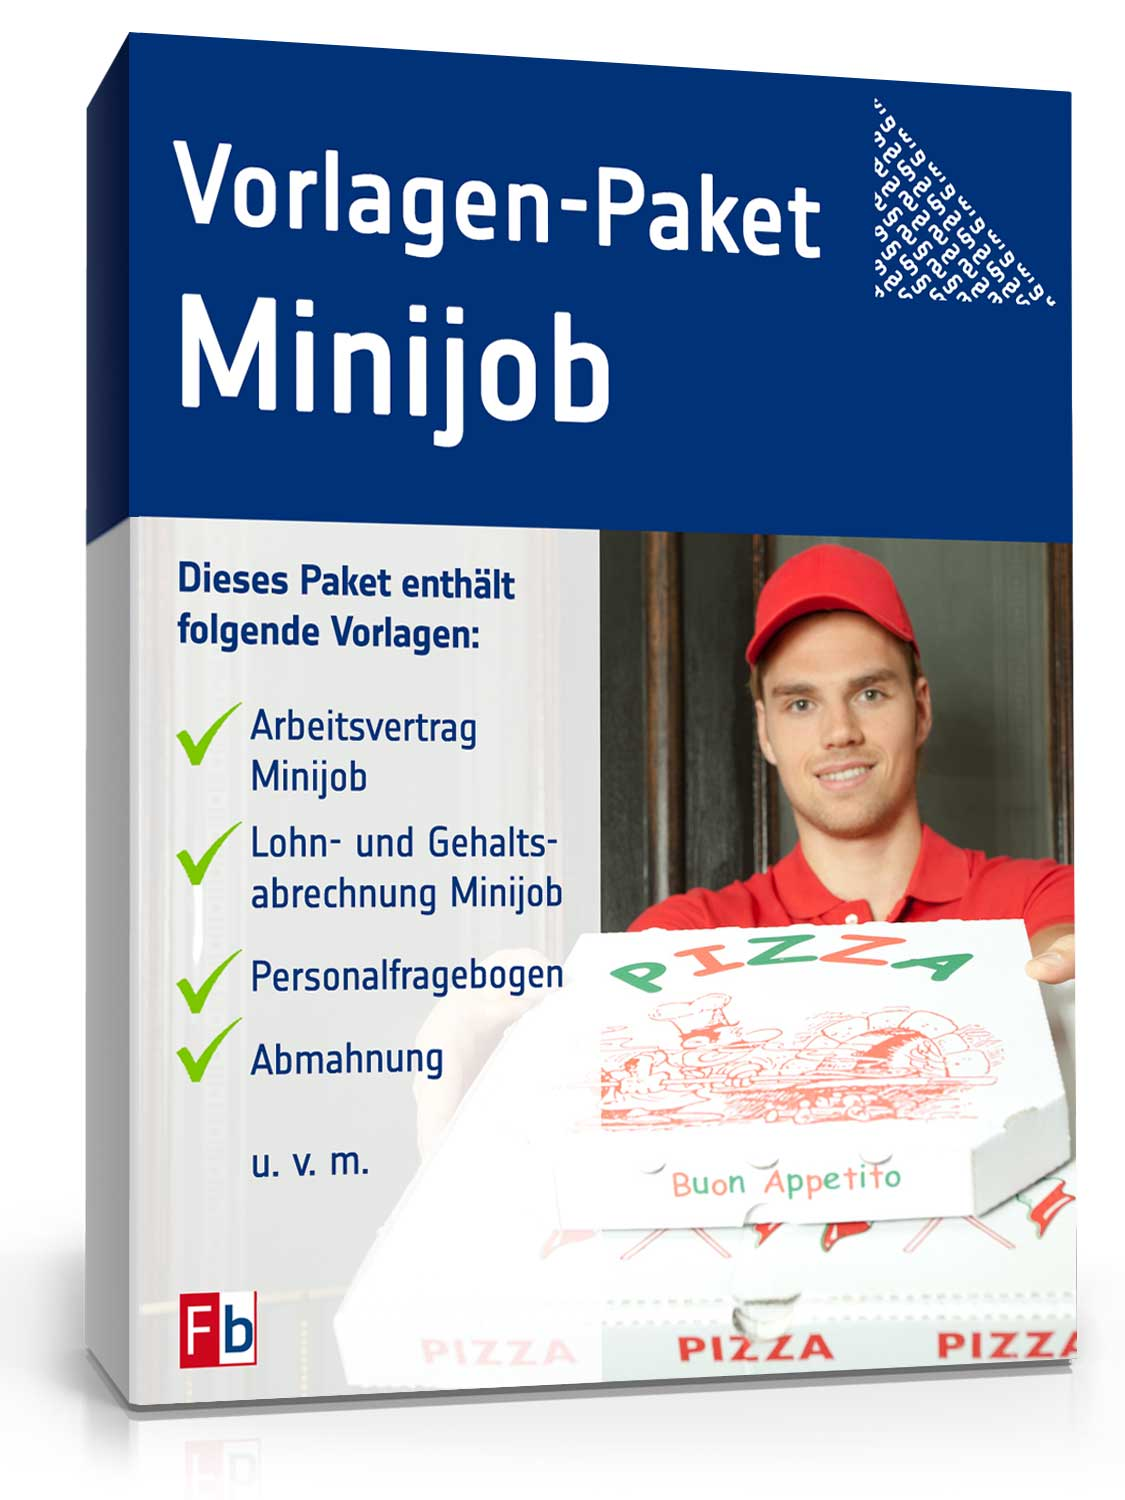 Vorlagen Paket Minijob 2017 Zip Ordner Download Amazonde Software